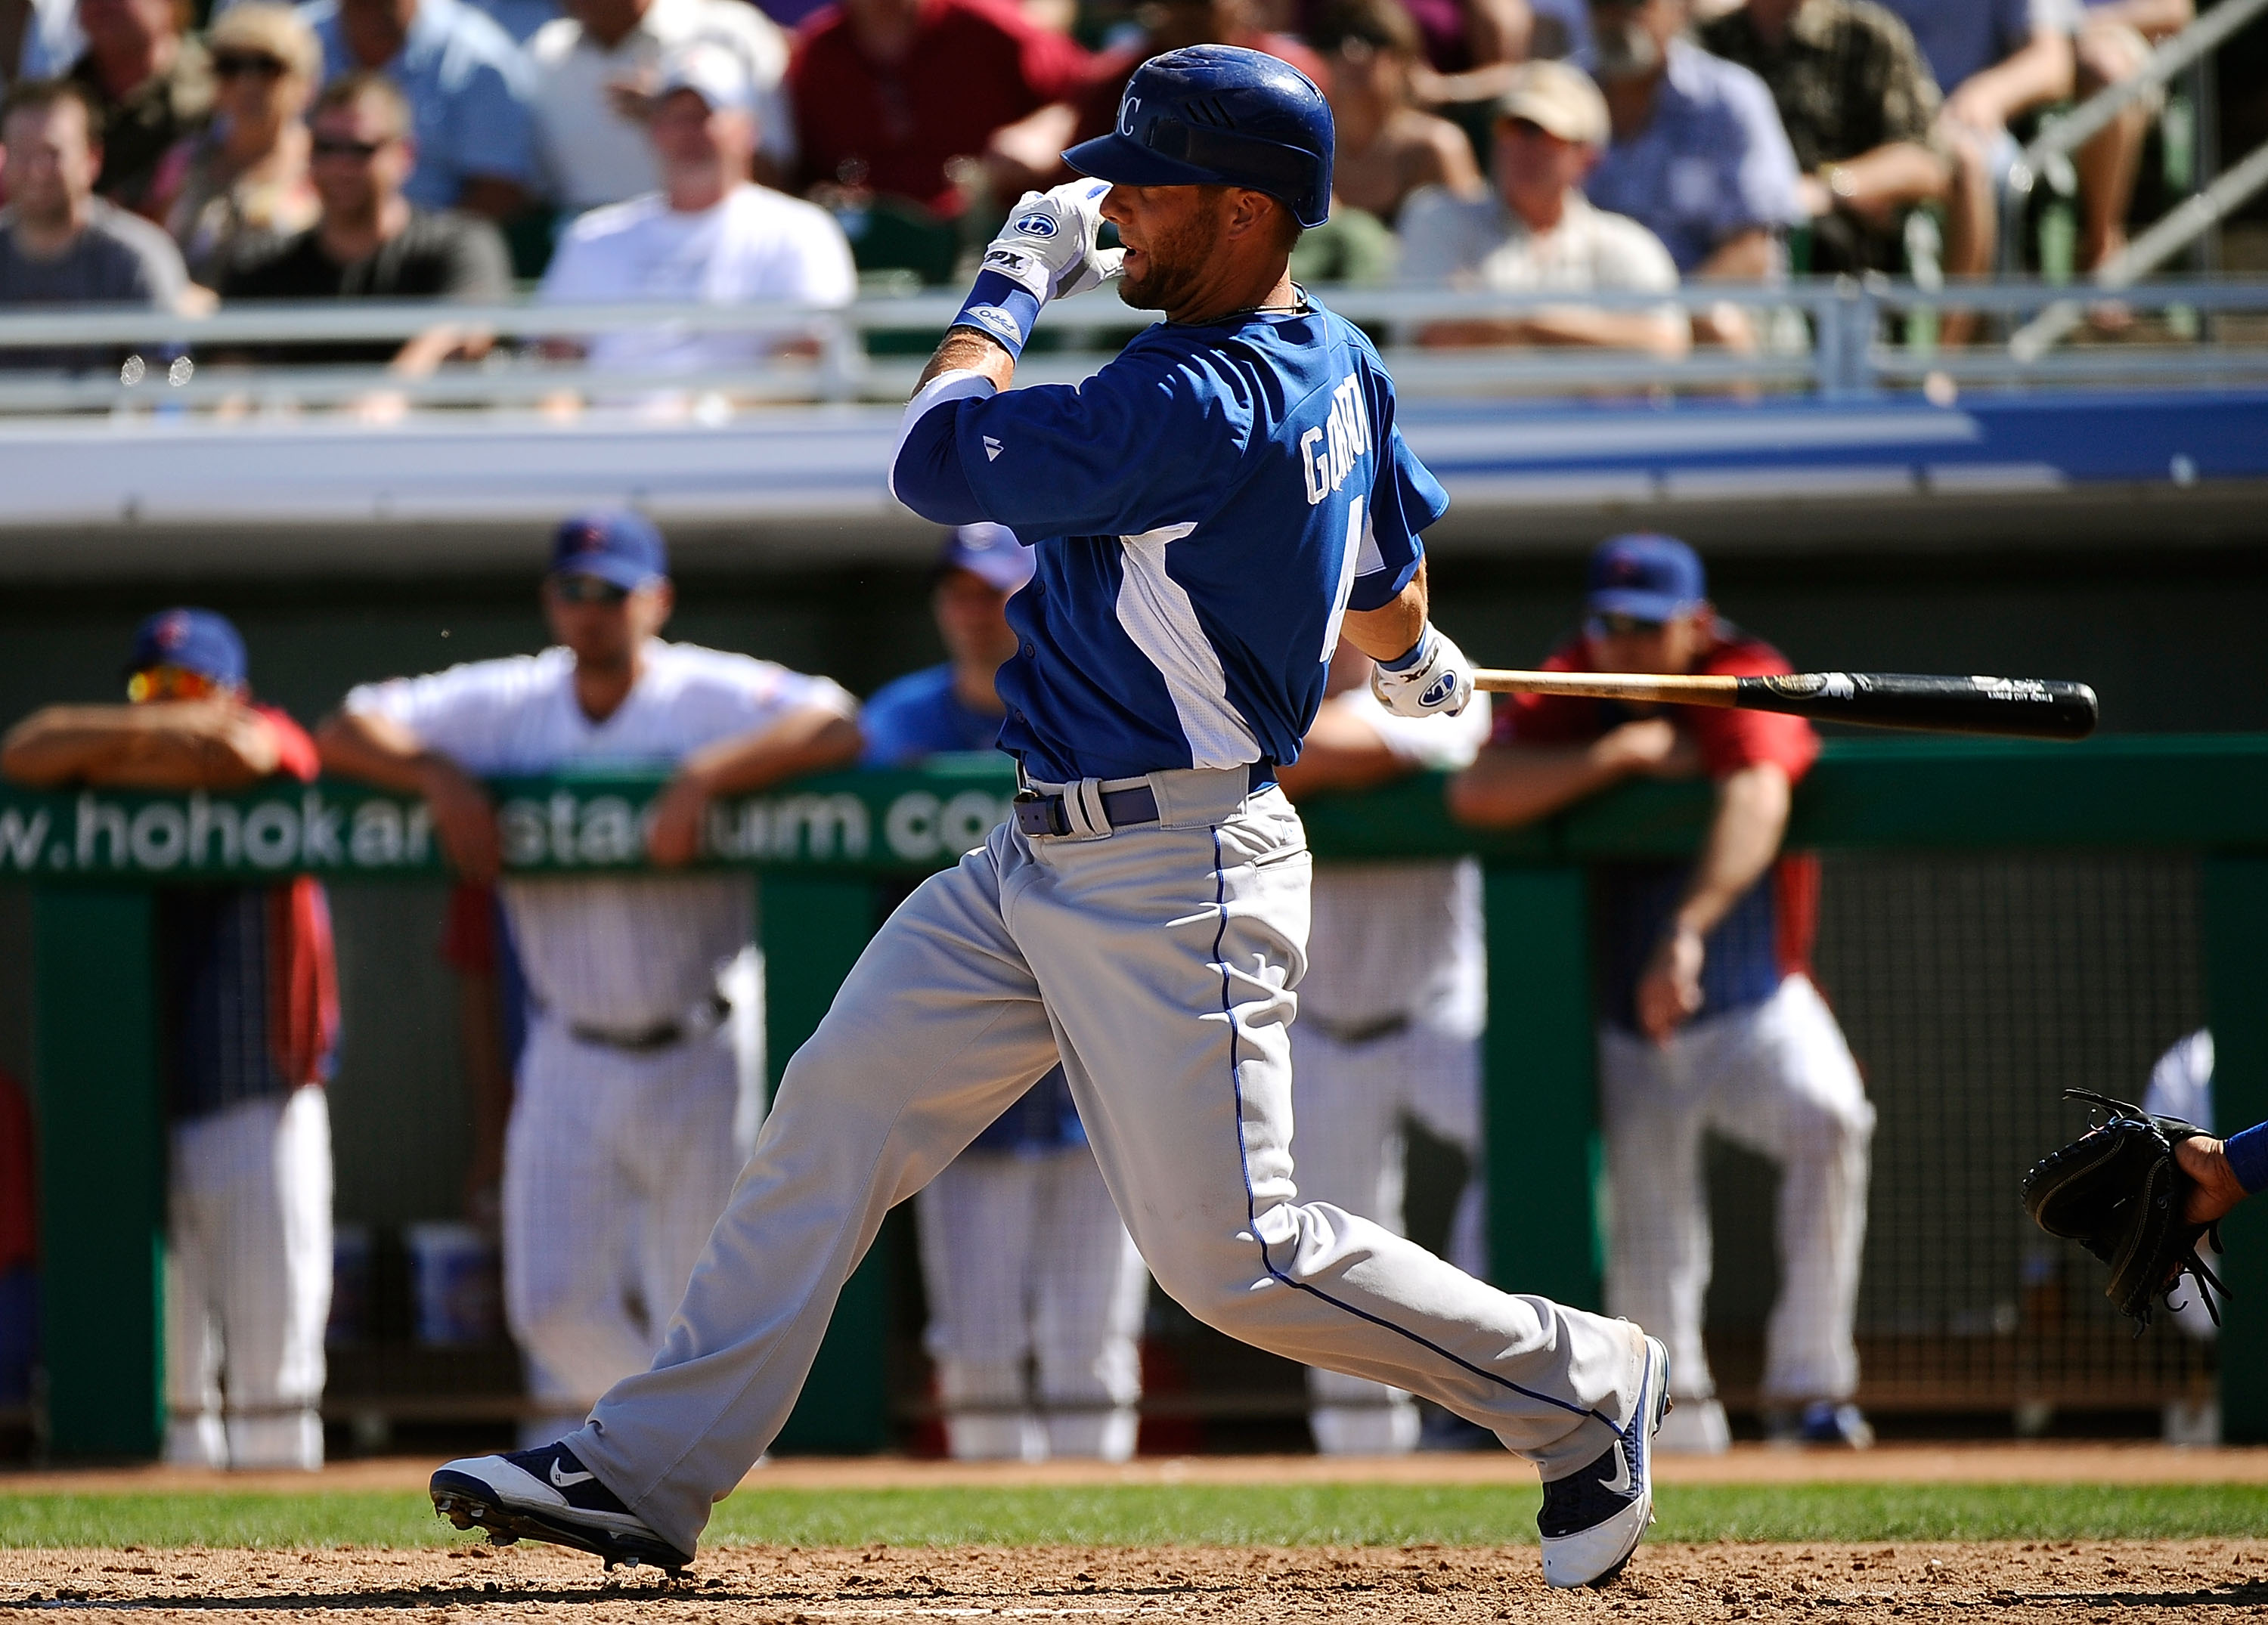 MESA, AZ - MARCH 09:  Alex Gordon #4 of the Kansas City Royals plays against the Chicago Cubs during the spring training baseball game at HoHoKam Stadium on March 9, 2011 in Mesa, Arizona.  (Photo by Kevork Djansezian/Getty Images)